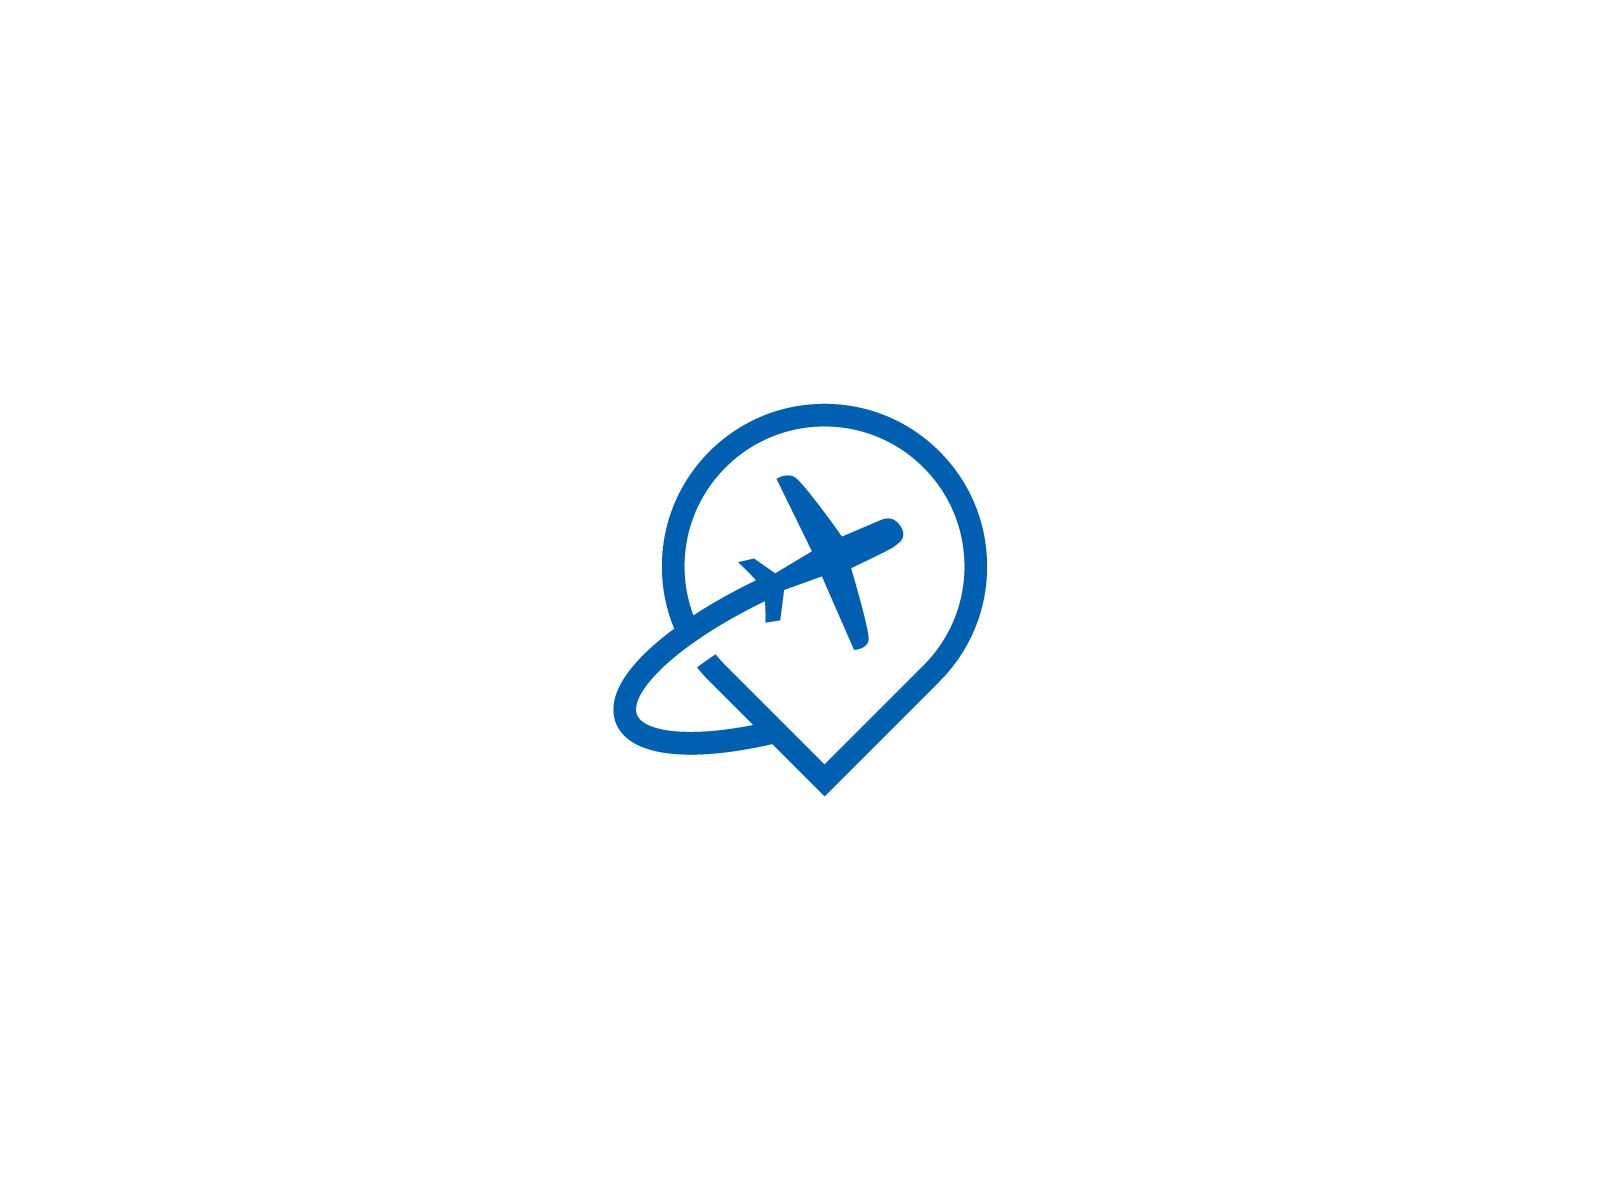 Pin Plane Icon By Lioner Dribbble